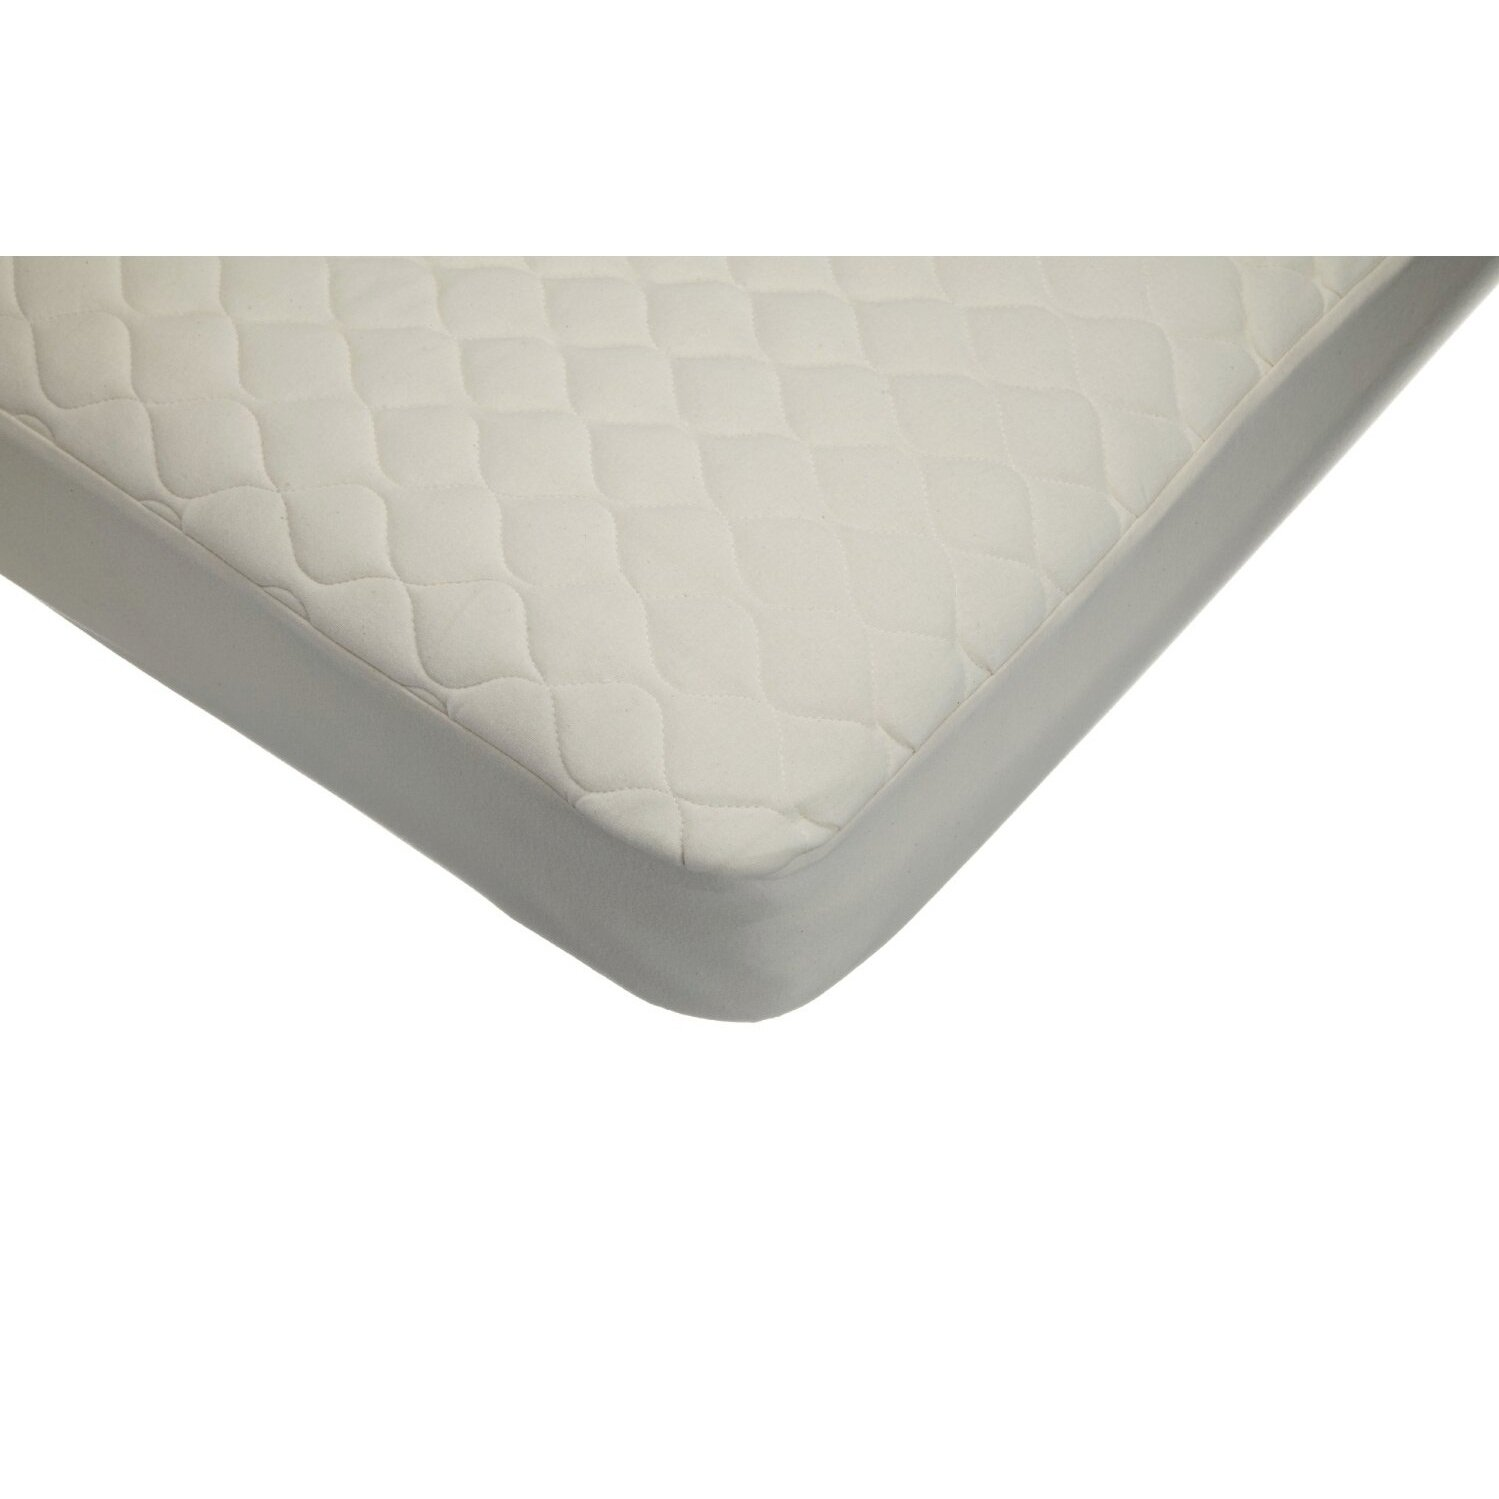 Baby crib mattress topper - American Baby Company Quilted Crib And Toddler Fitted Mattress Pad